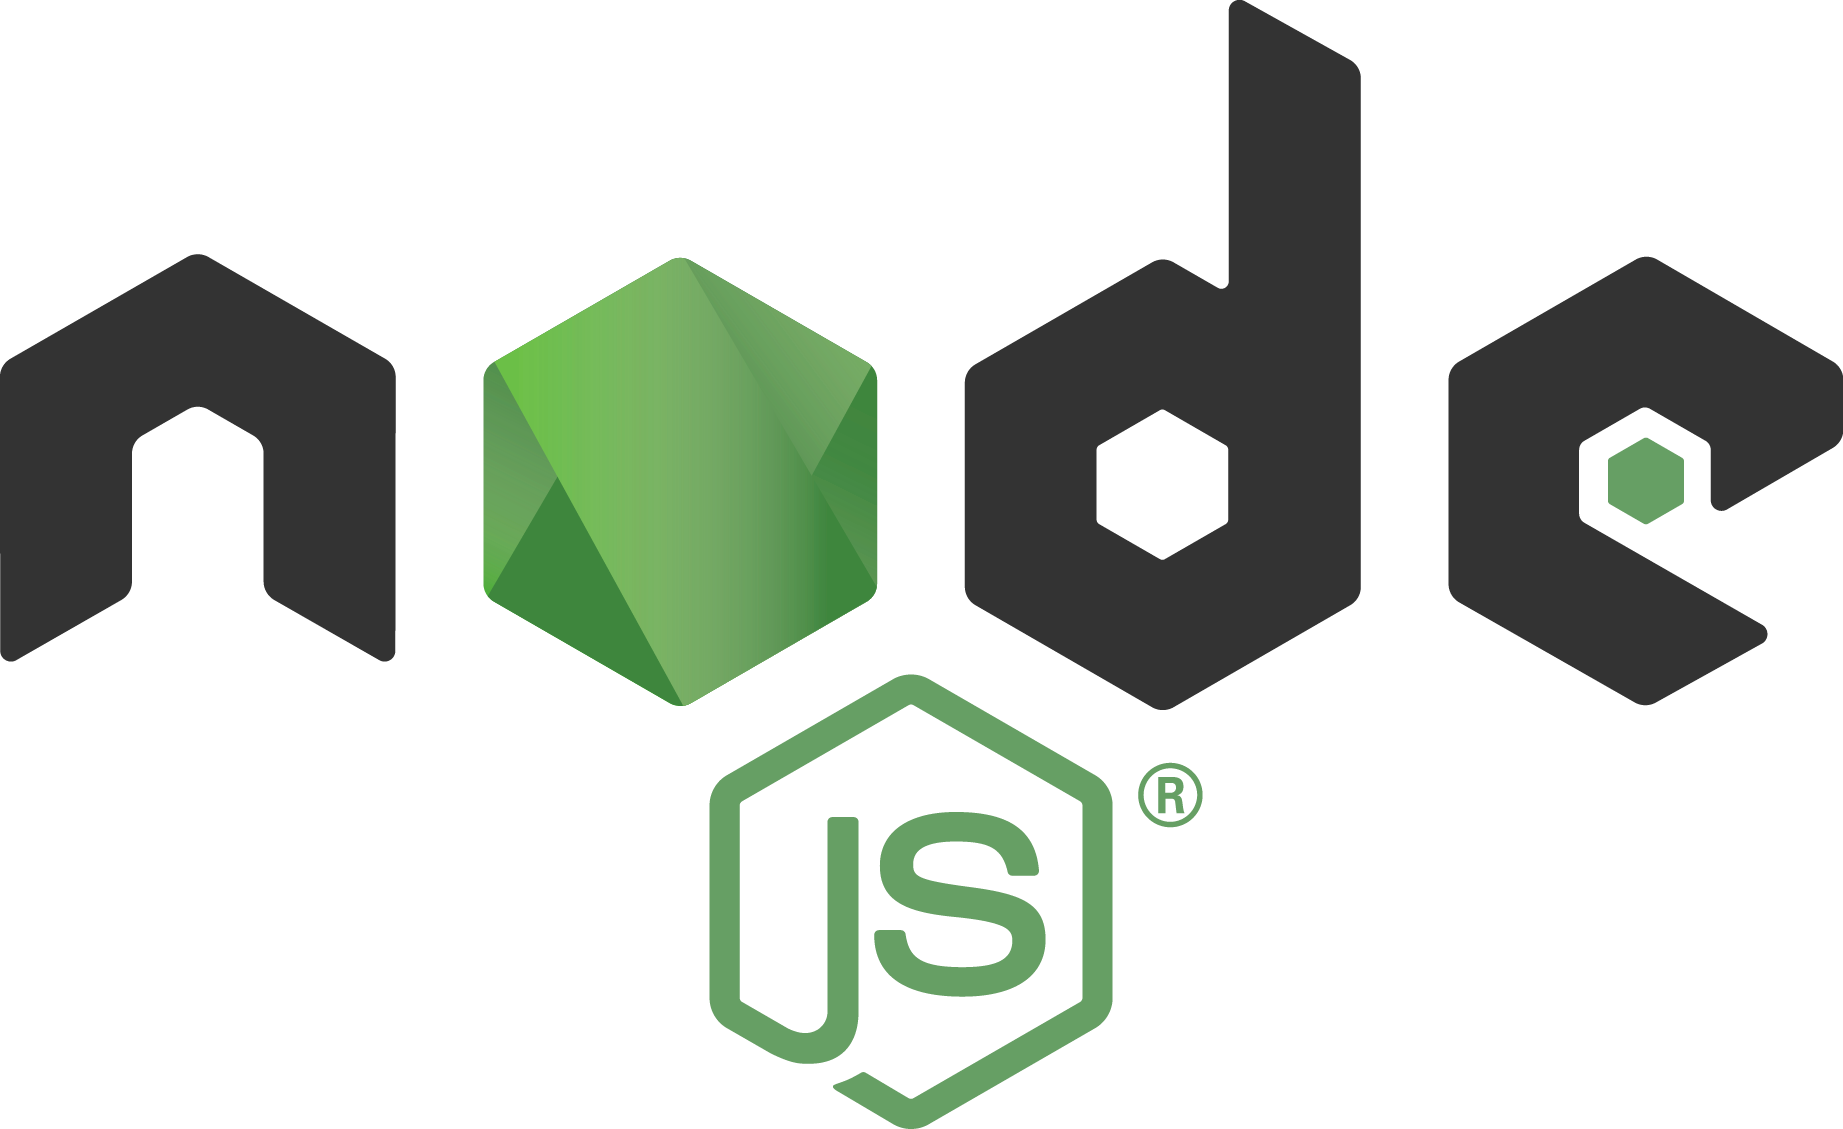 Logo for Node JS